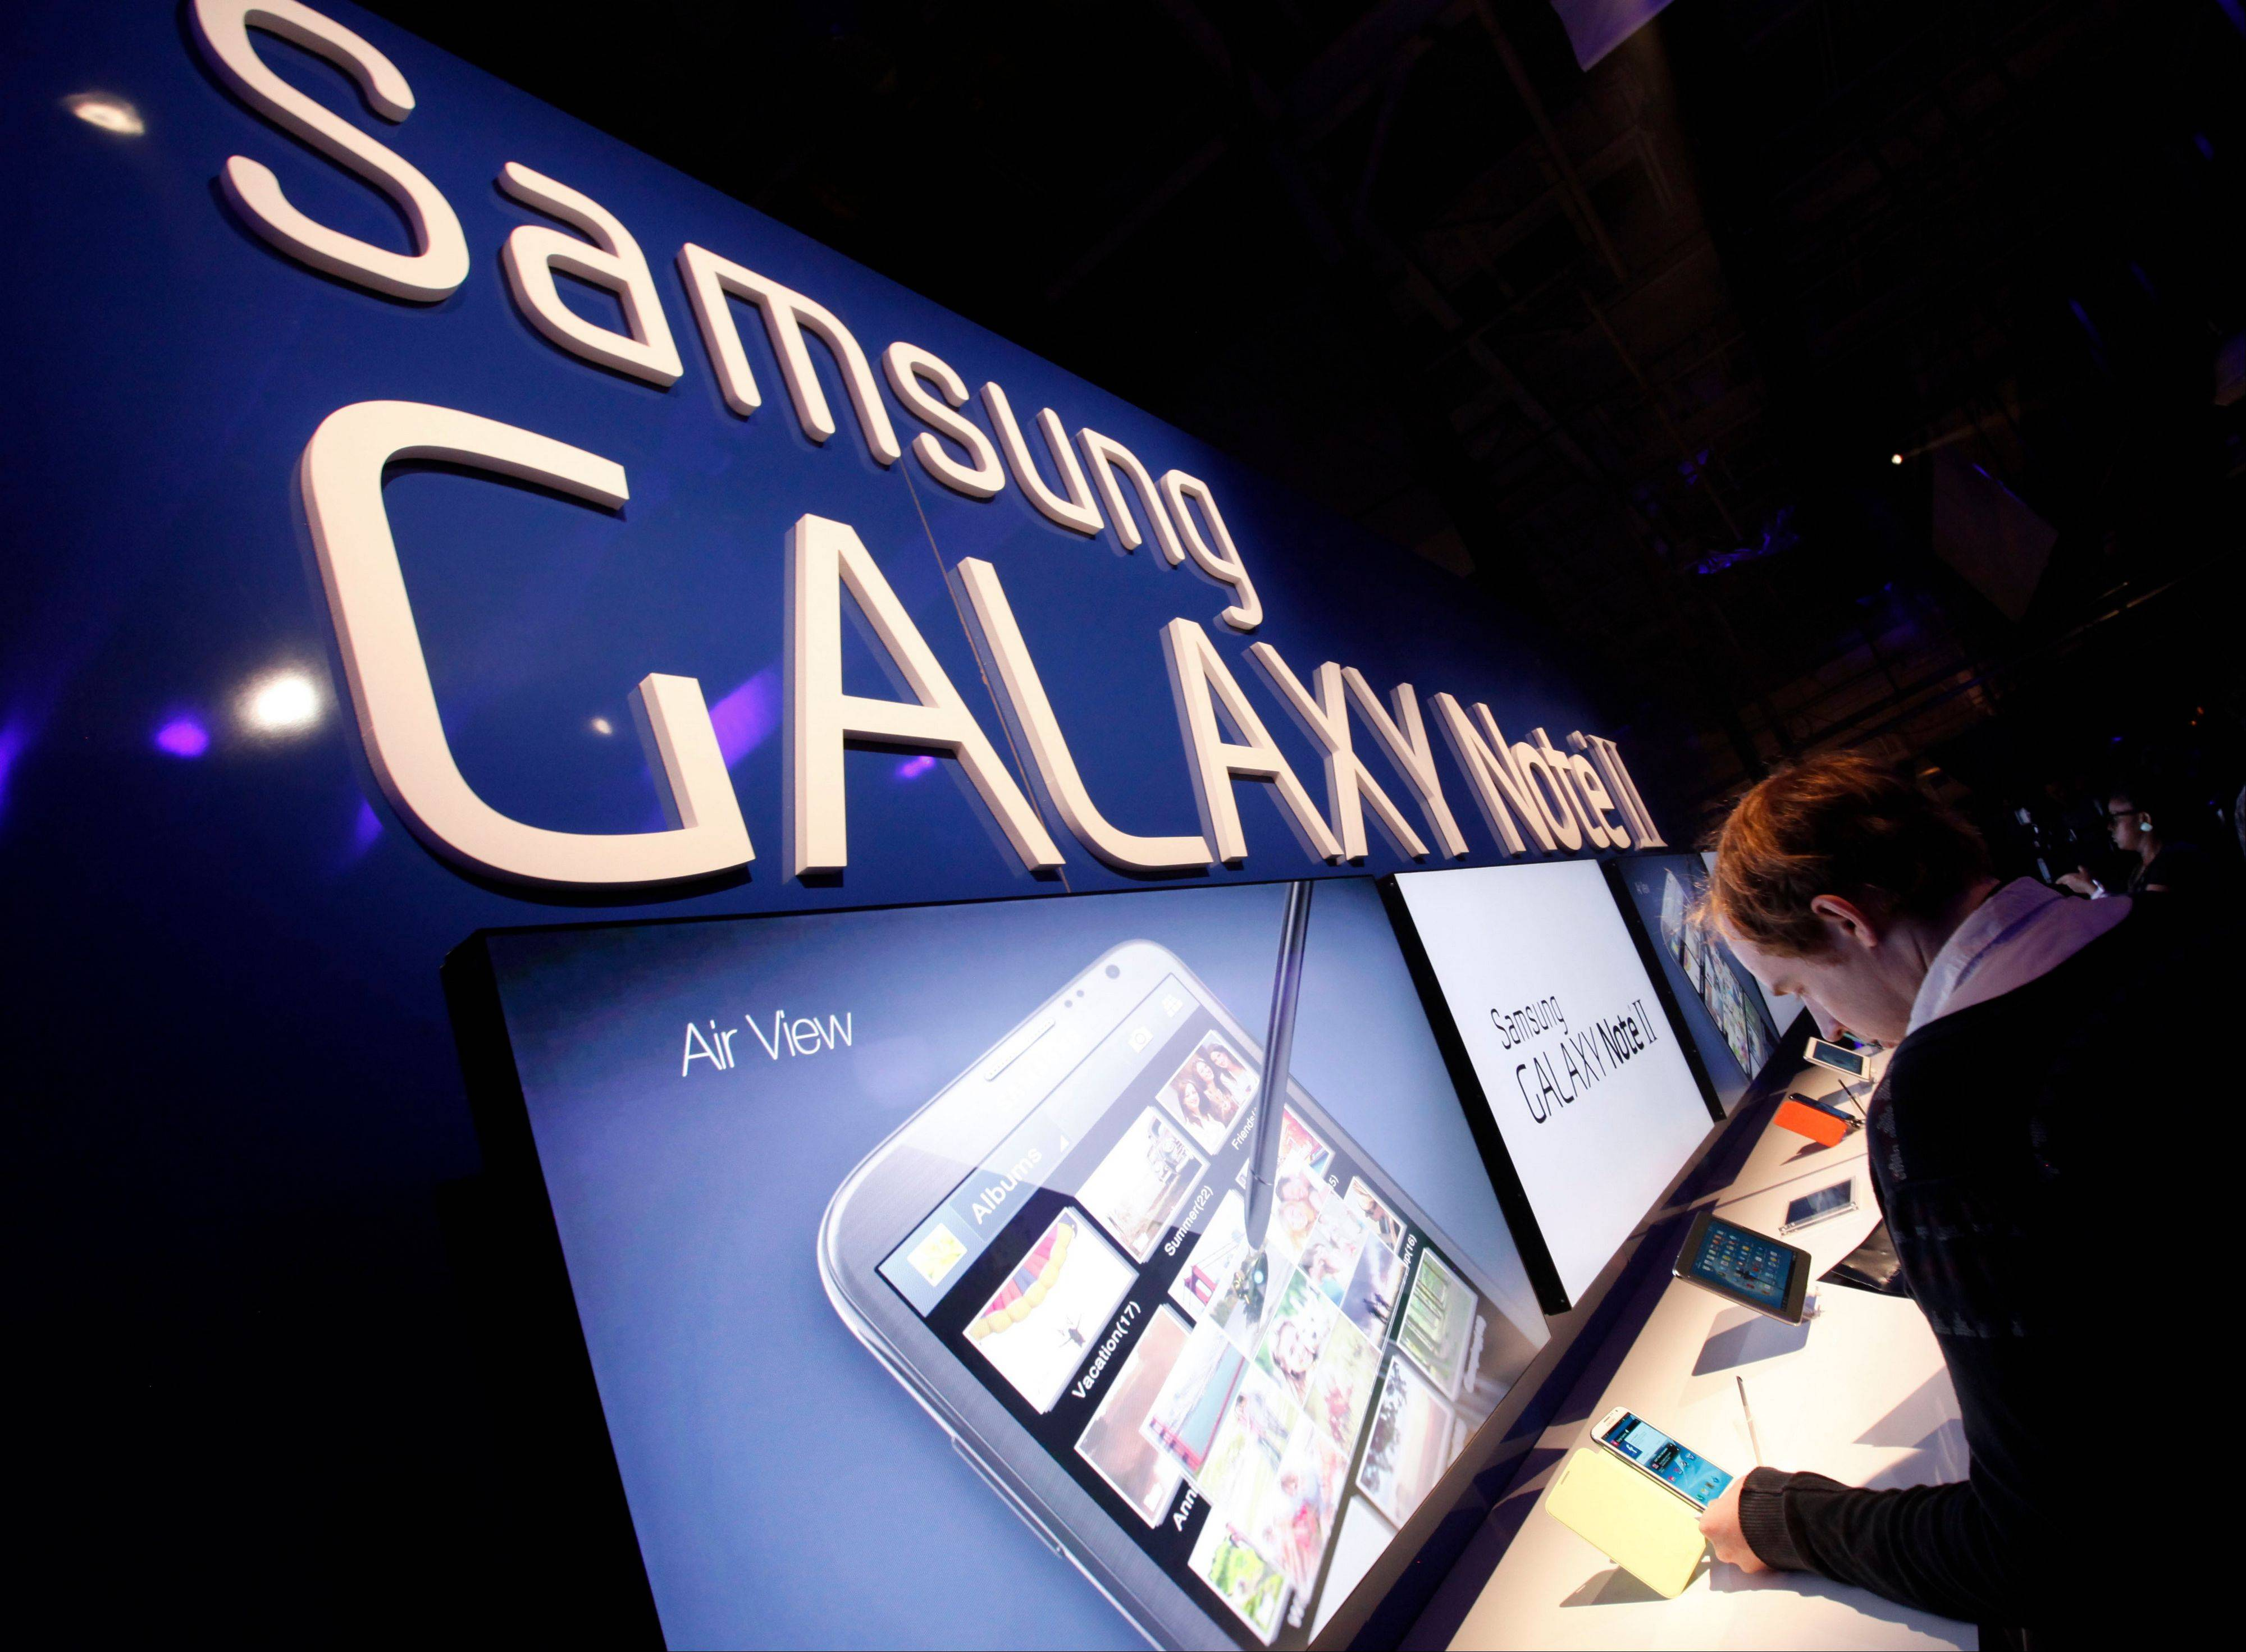 Attendees try out the new Samsung Galaxy Note II during a launch event, Wednesday in New York.